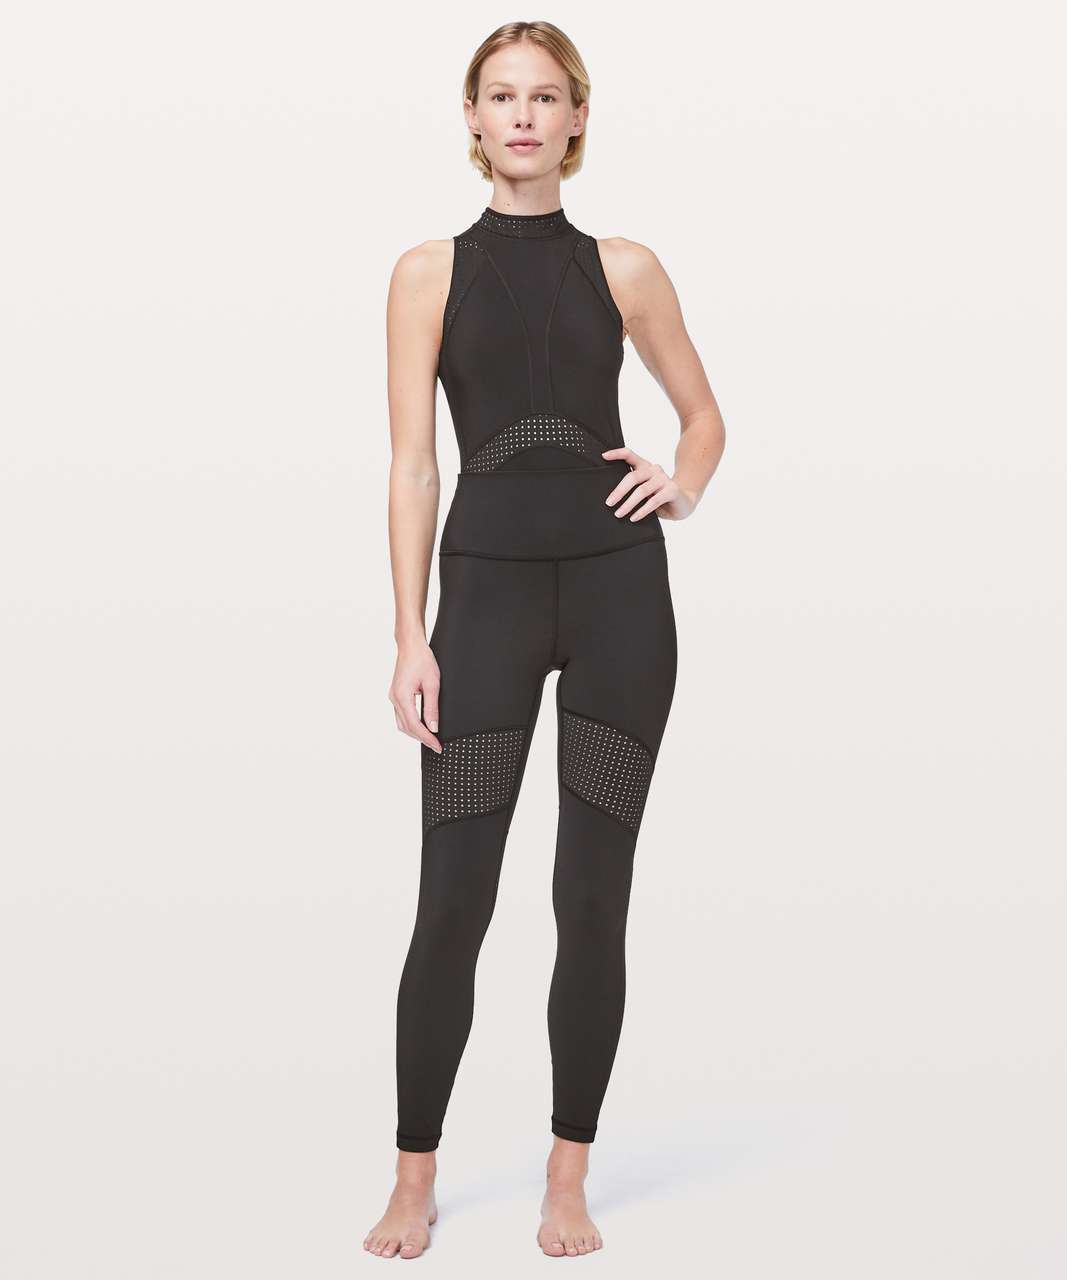 Lululemon Beach Break Paddlesuit - Black